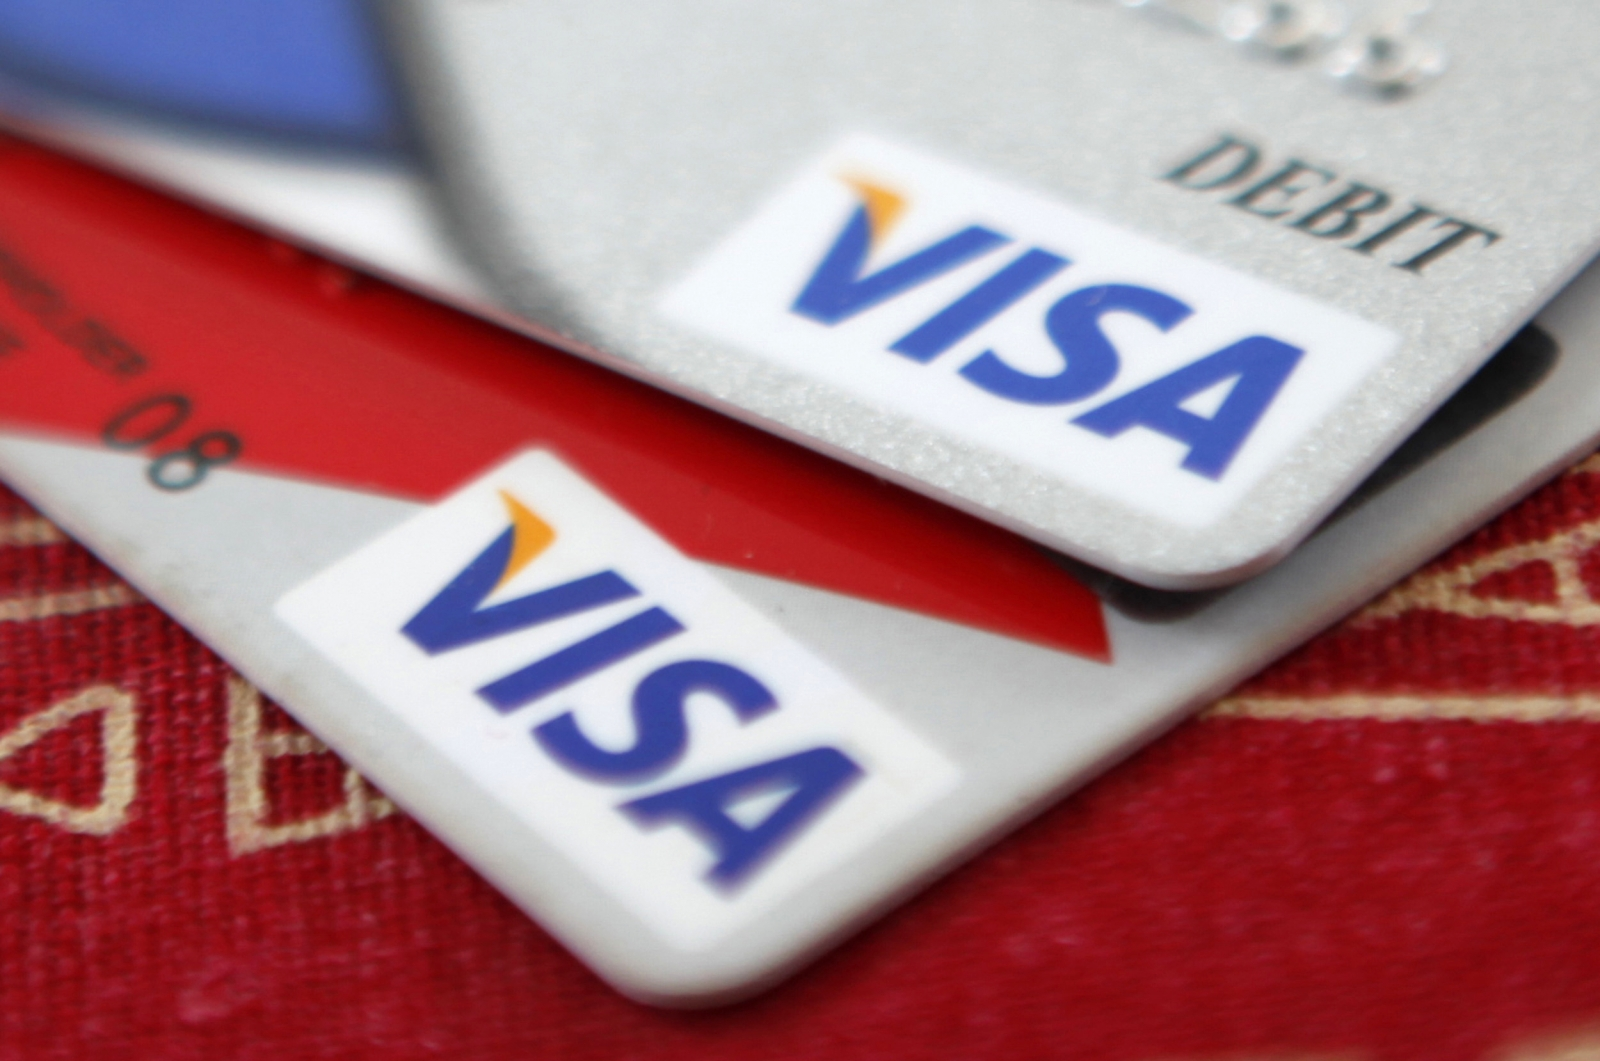 Walmart to stop accepting Visa cards across its 405 Canadian stores